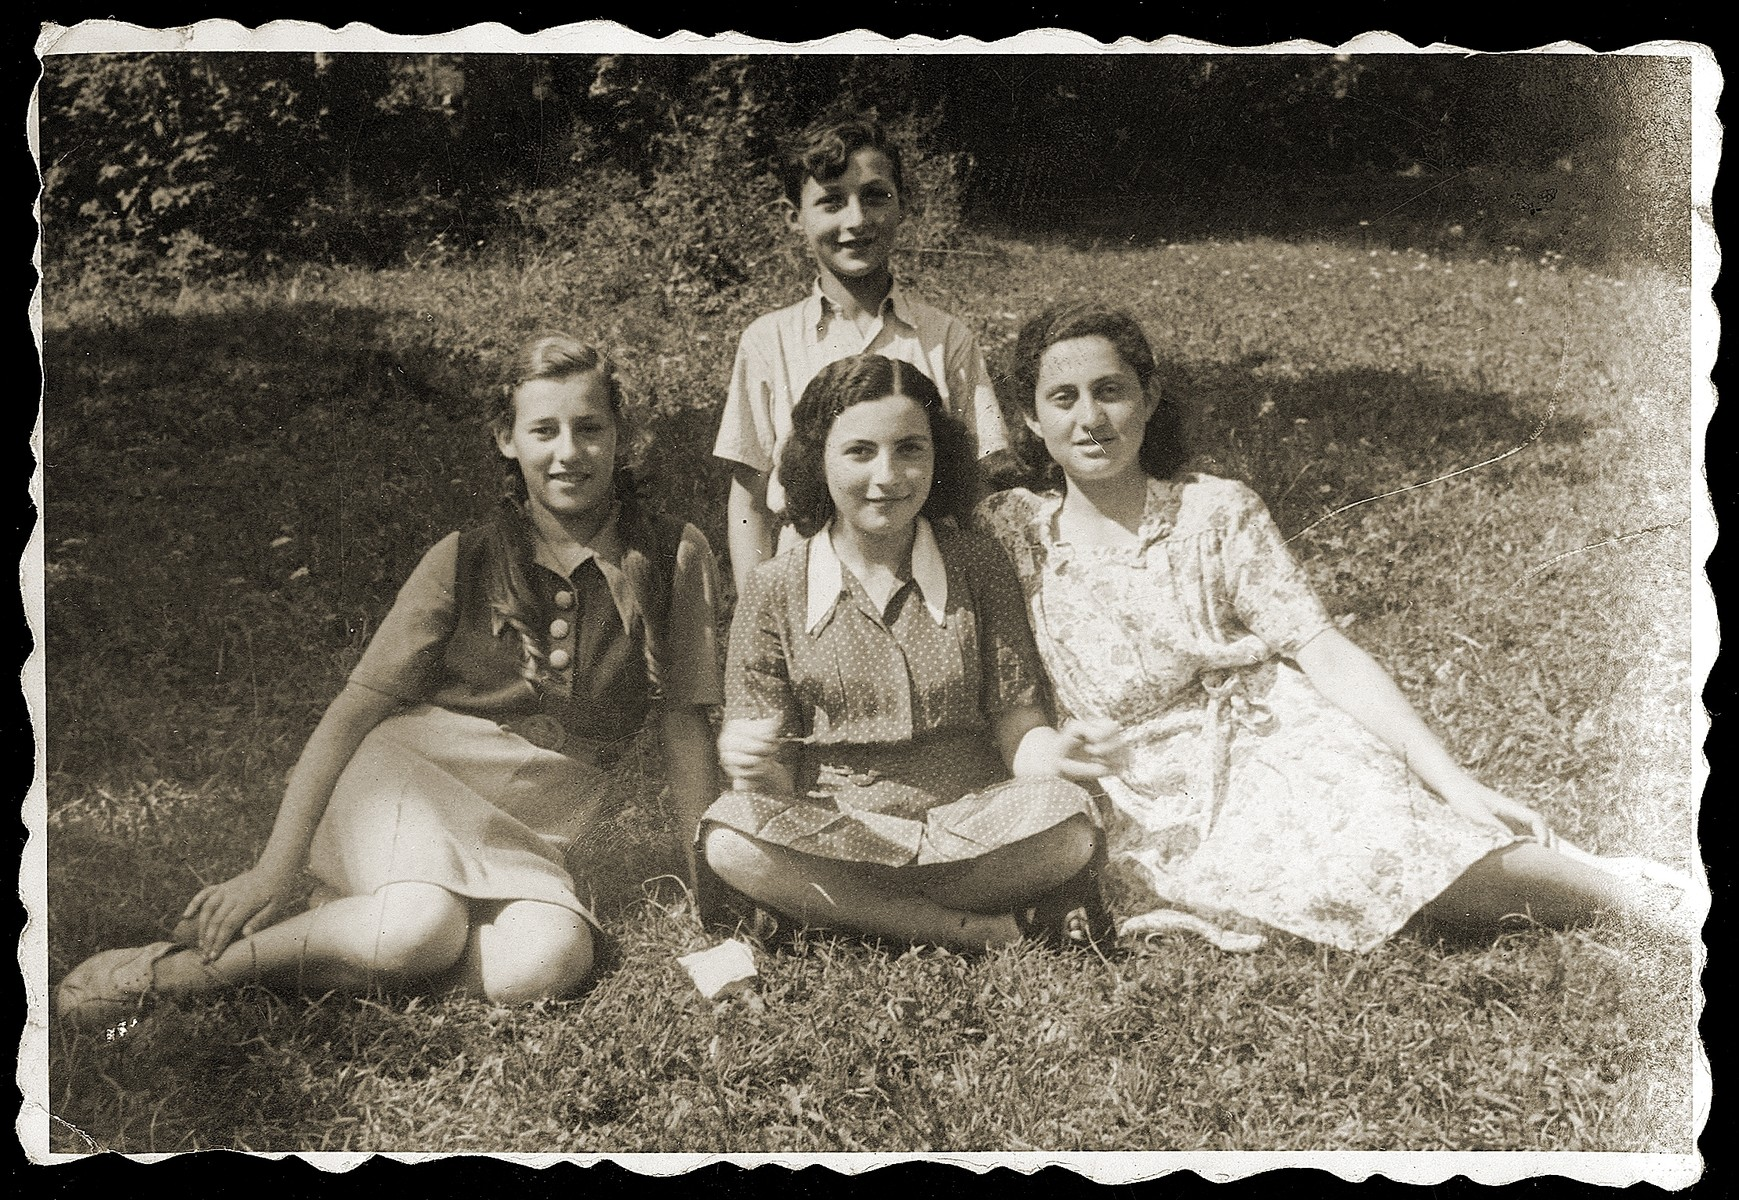 Four Jewish youth who returned to Bedzin after the war, pose outside seated on the grass.  Among those pictured are Lolek Przyrowski (top) and Shulamit Sternfeld (right).